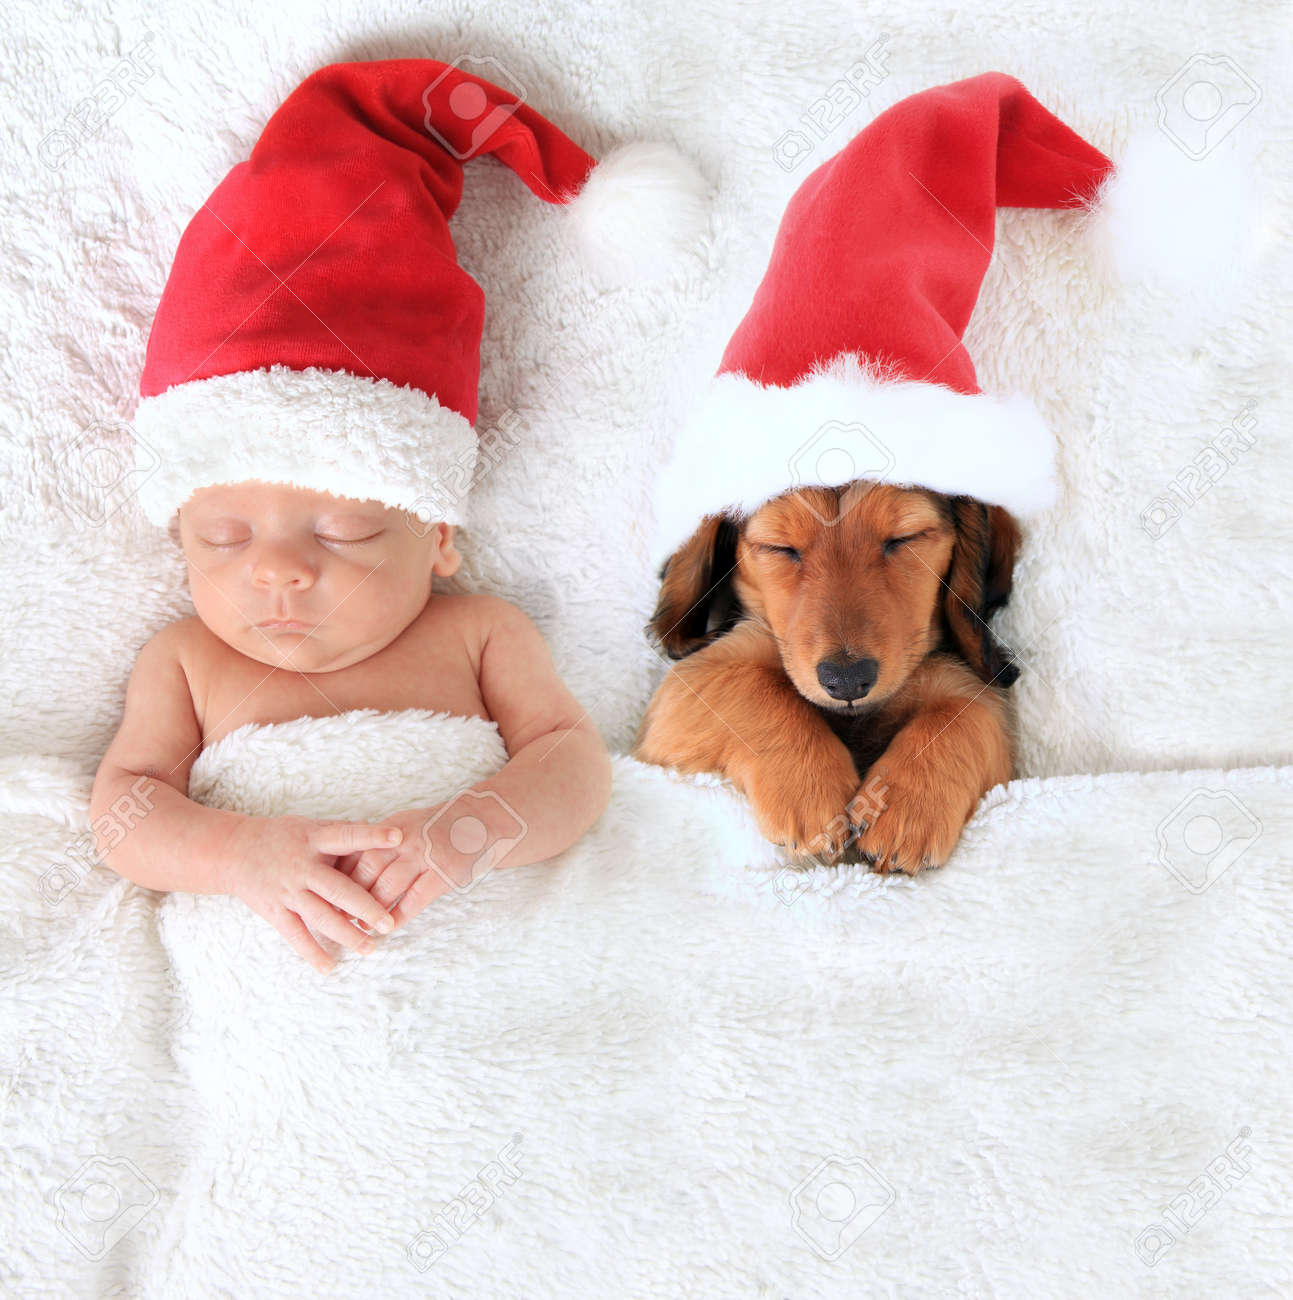 Newborn Christmas Pictures.Sleeping Newborn Christmas Baby Alongside A Dachshund Puppy Wearing